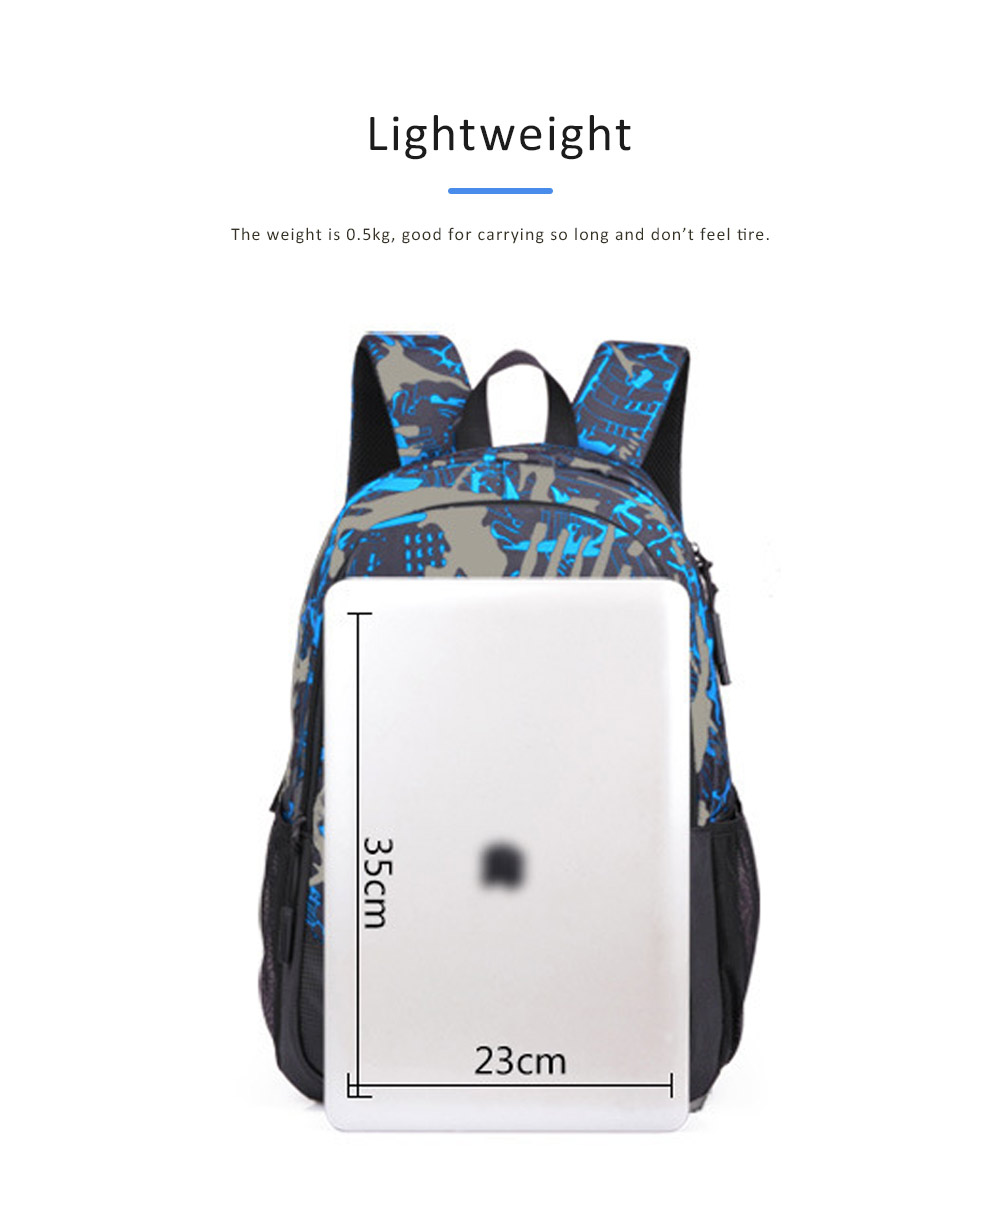 USB Charge Port Backpack for Notebook, Laptop, Waterproof Oxford School Bag for Students, Traveling 7